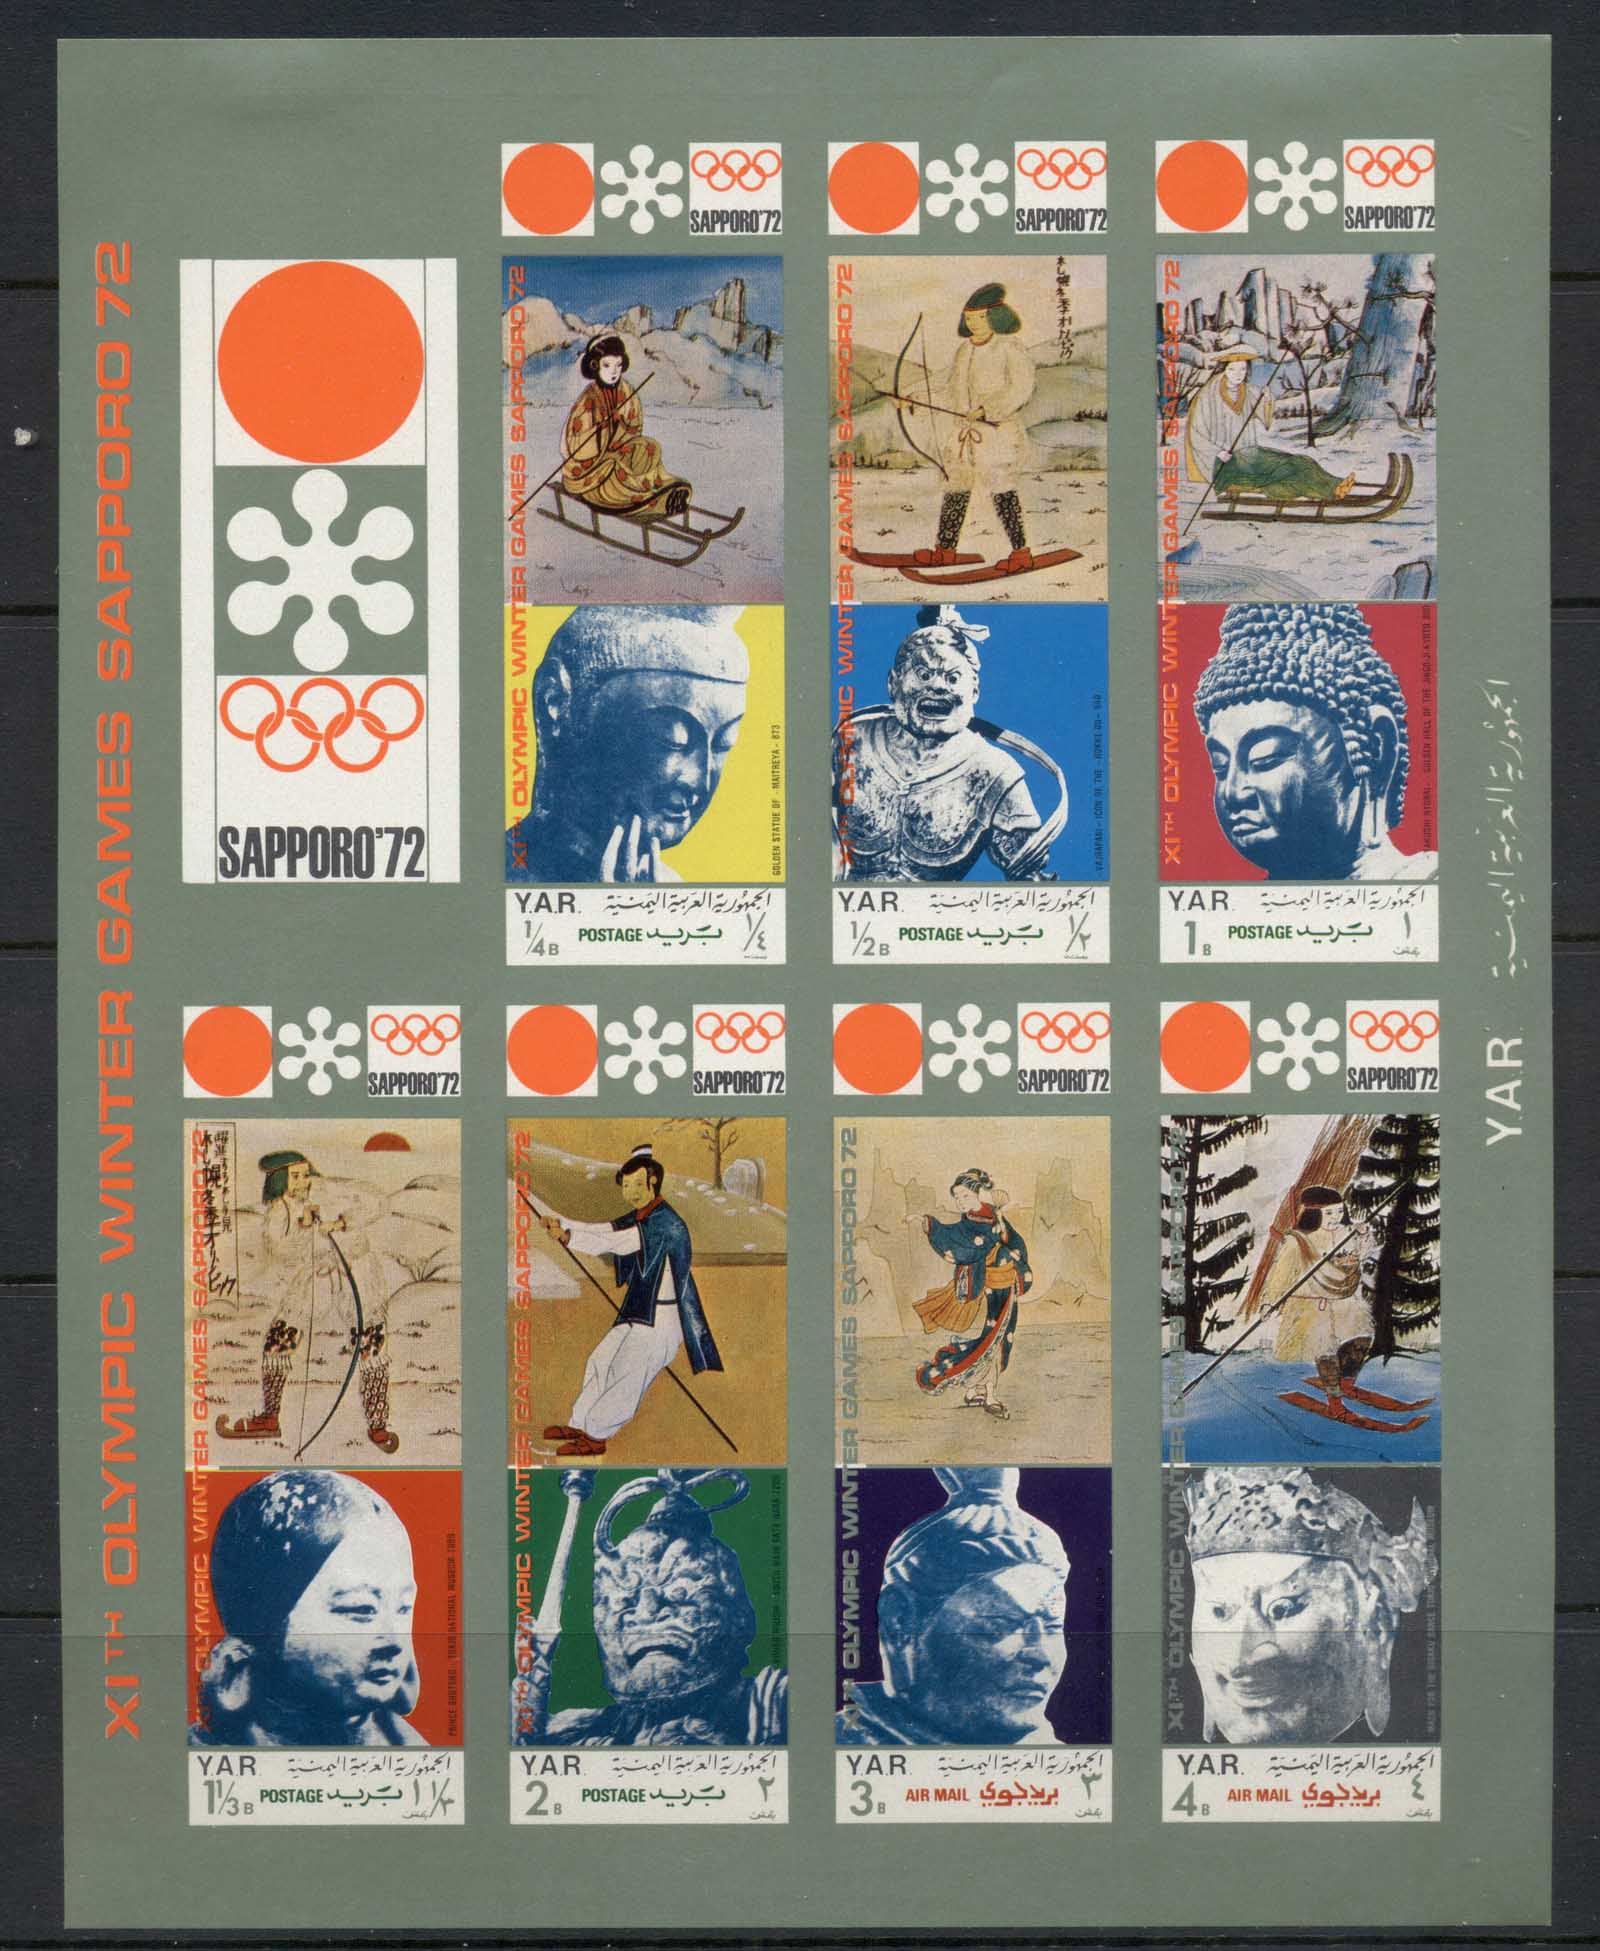 Yemen 1971 Mi#1361-1367 Winter Olympics Sapporo, Winter Sports in Japanese Paintings sheetlet IMPERF MLH